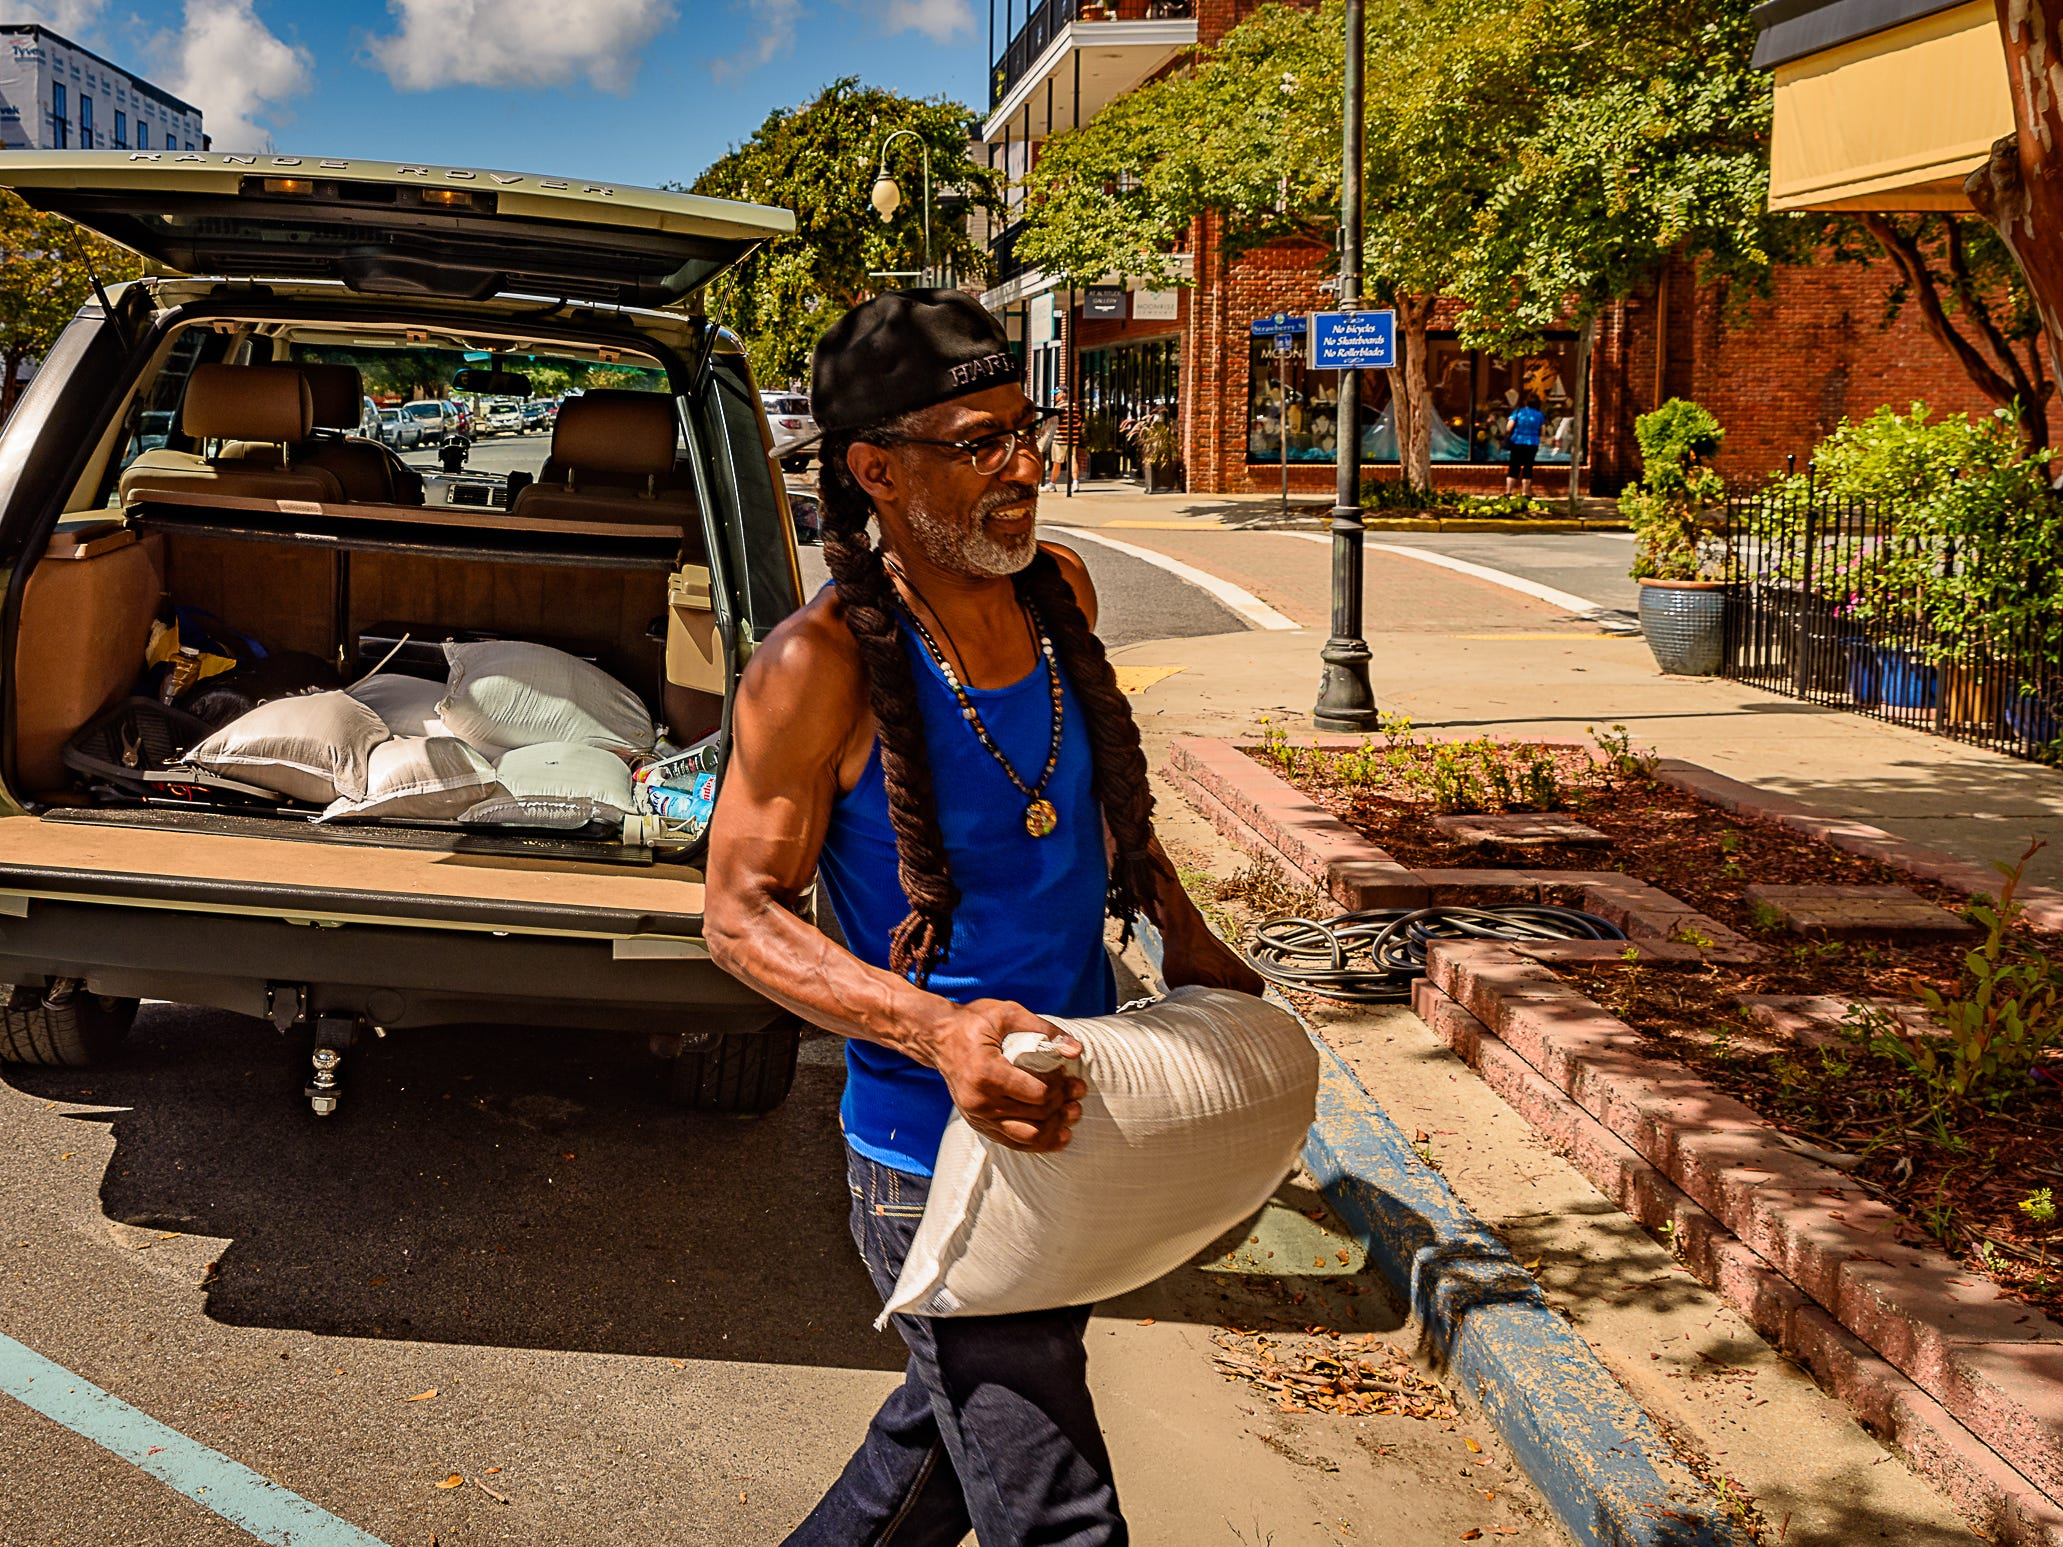 Local artist and Cape Charles resident Leland Sharp places sandbags in front of the Lemon Tree Gallery as Northampton County prepared for the approaching Hurricane Florence.